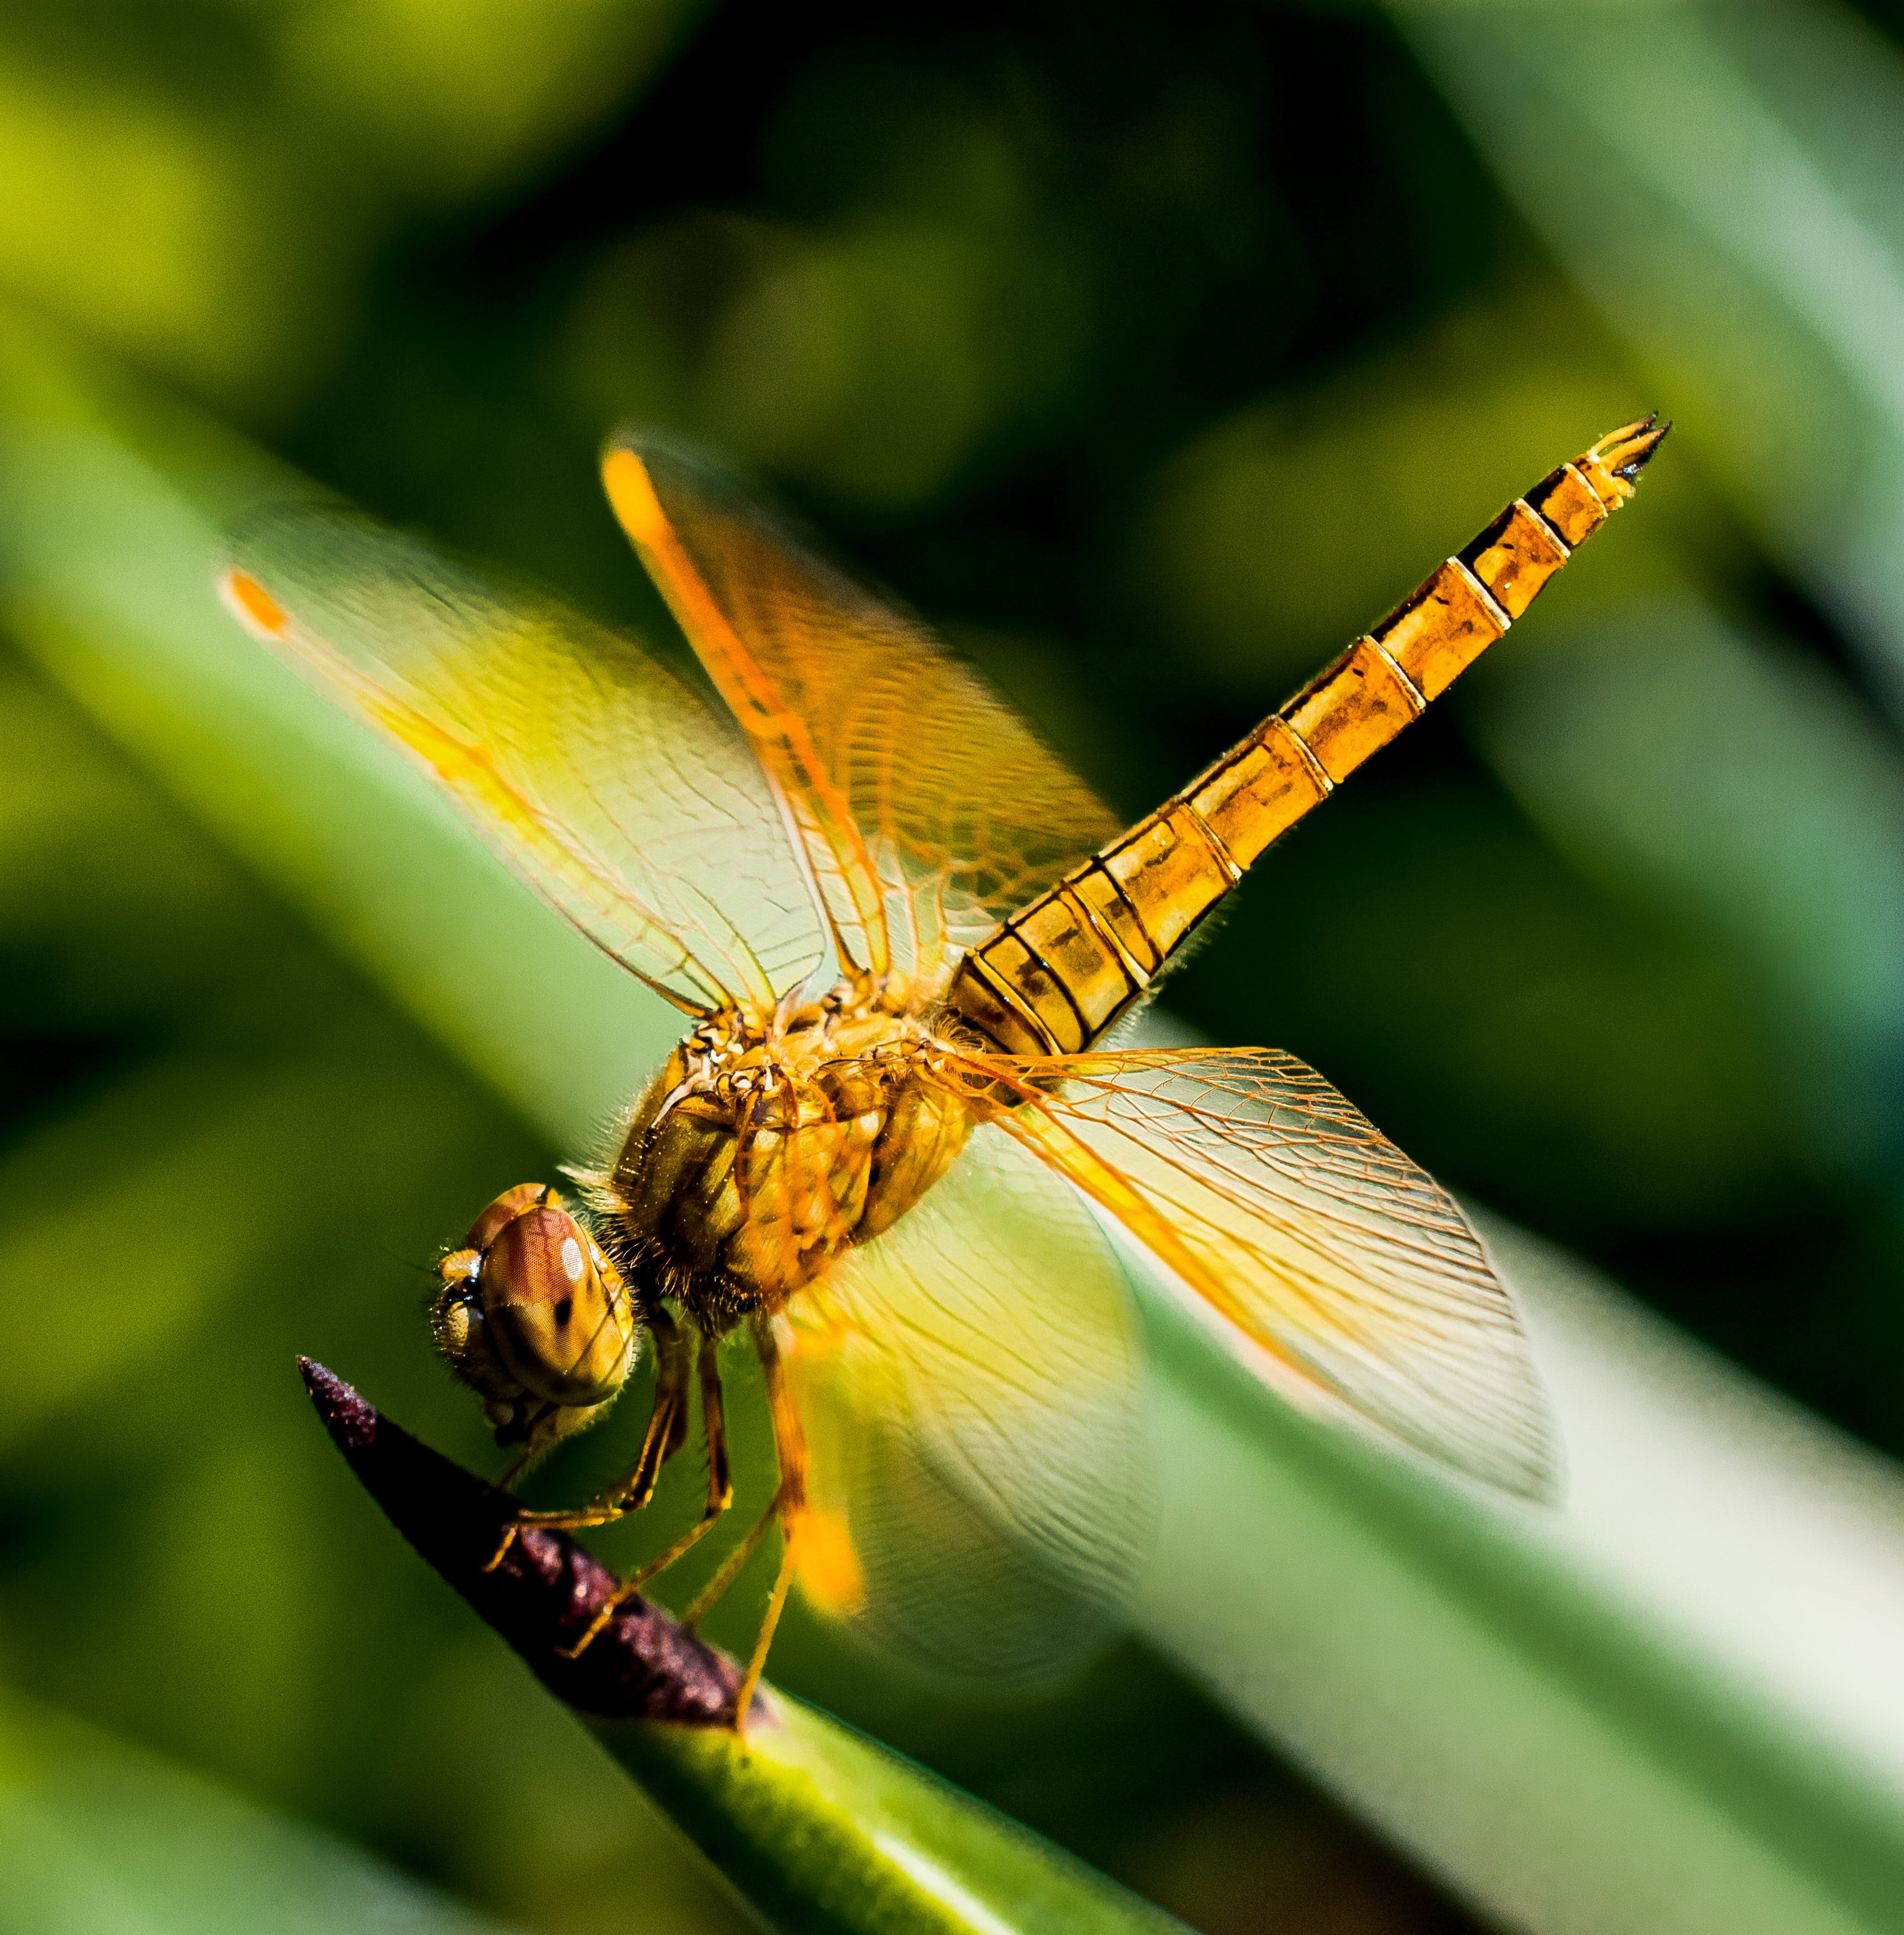 Yellow Black Dragon Fly on Green Leaf Plant